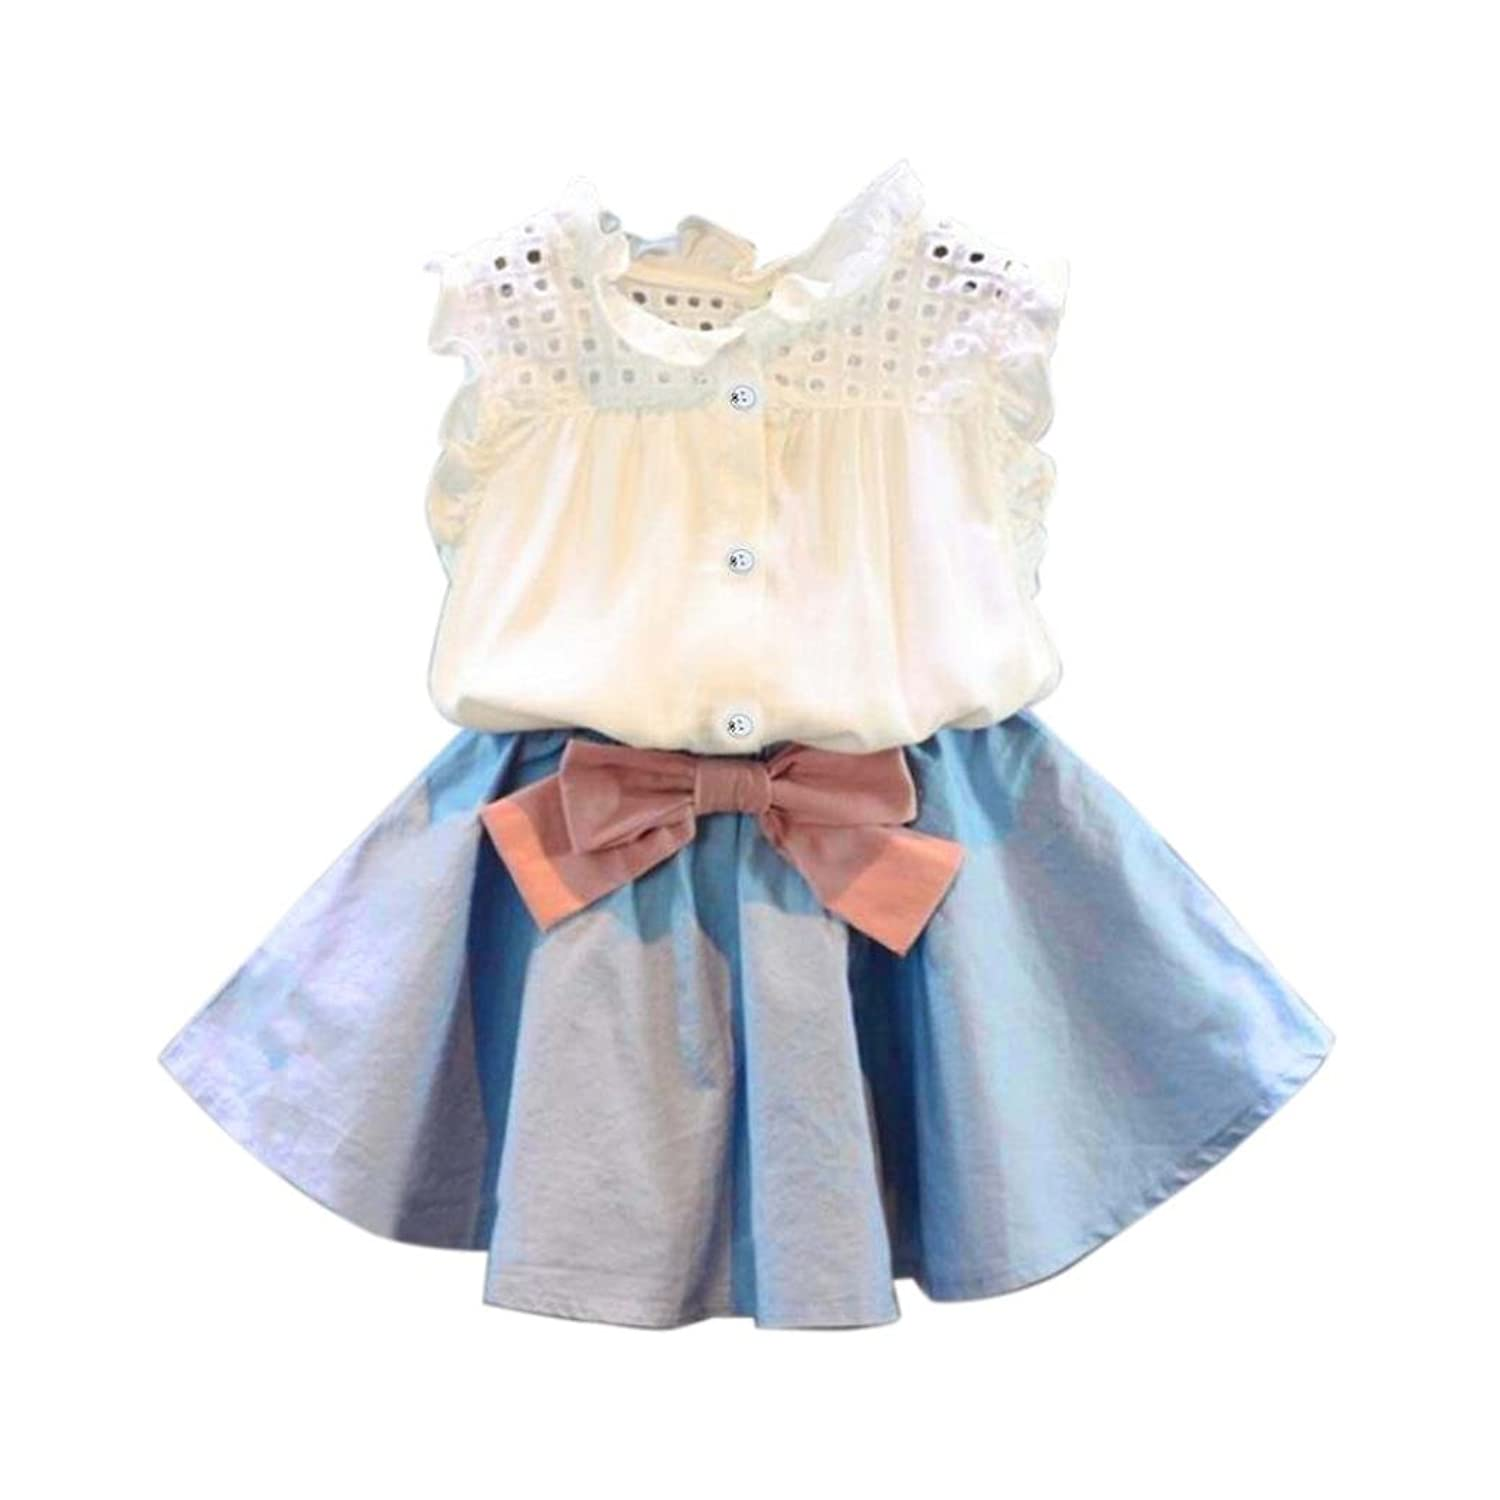 021908457be2 Gender:Girls. Sleeve Length: Short Sleeve. Clothing Length:Regular.  Style:Cute,fashion. Suitable for wedding party, holiday party, First  Communion, ...